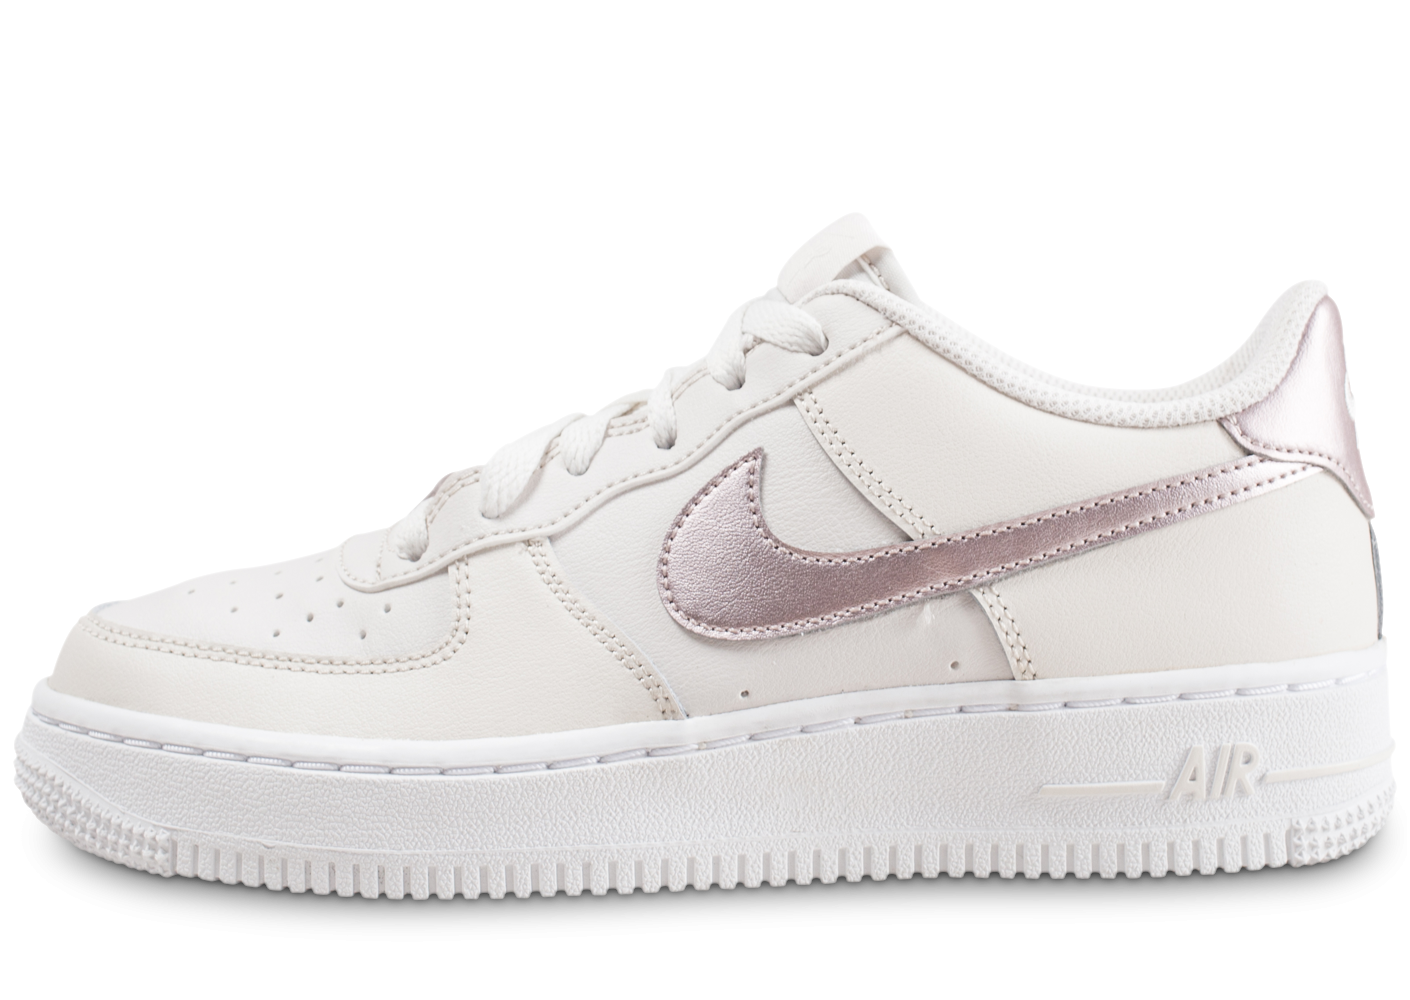 air force 1 blanc et bronze